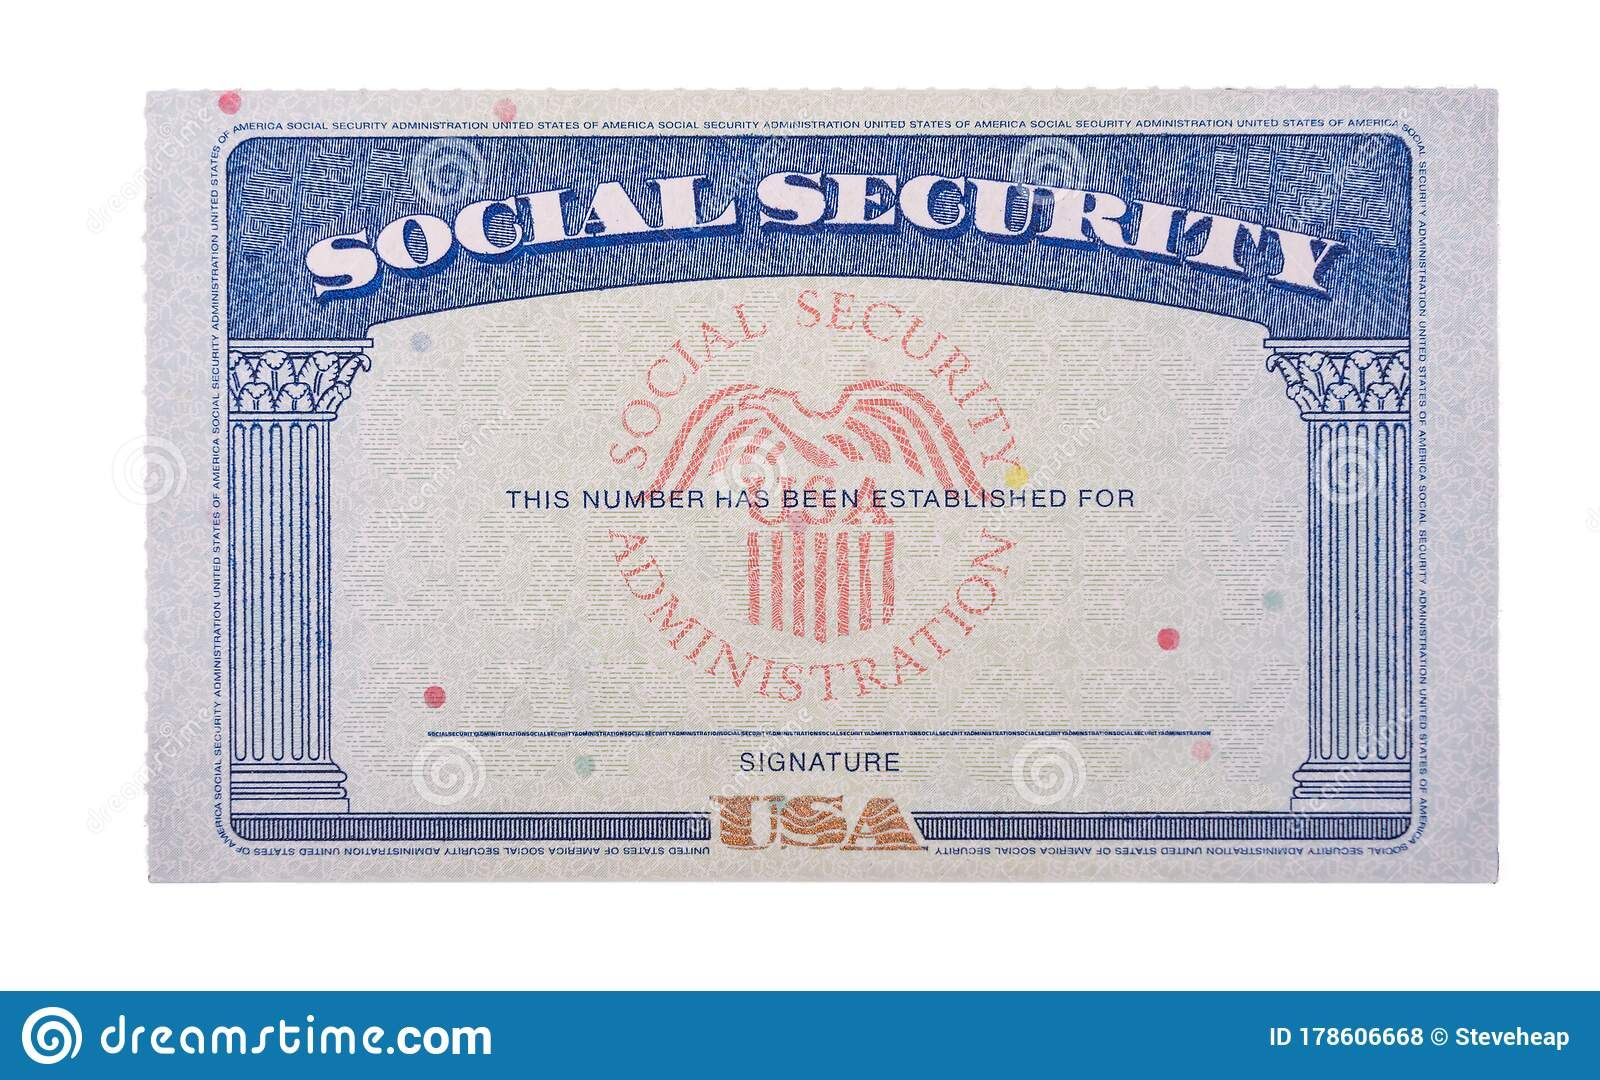 How To Get Social Security Card Without Birth Certificate Or Id